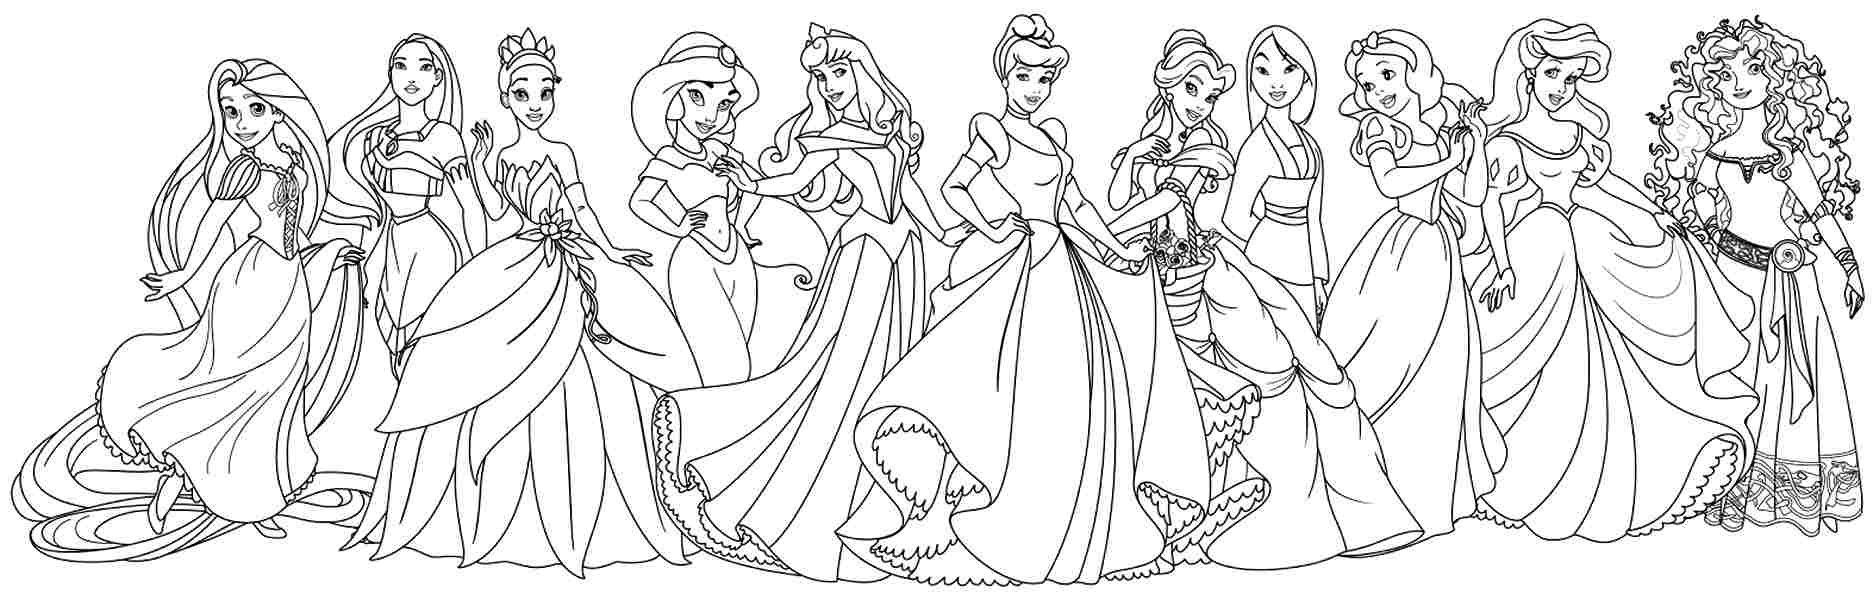 Print Disney Princess Coloring Pages Coloring Home Princess Coloring Pages For Adults Printable